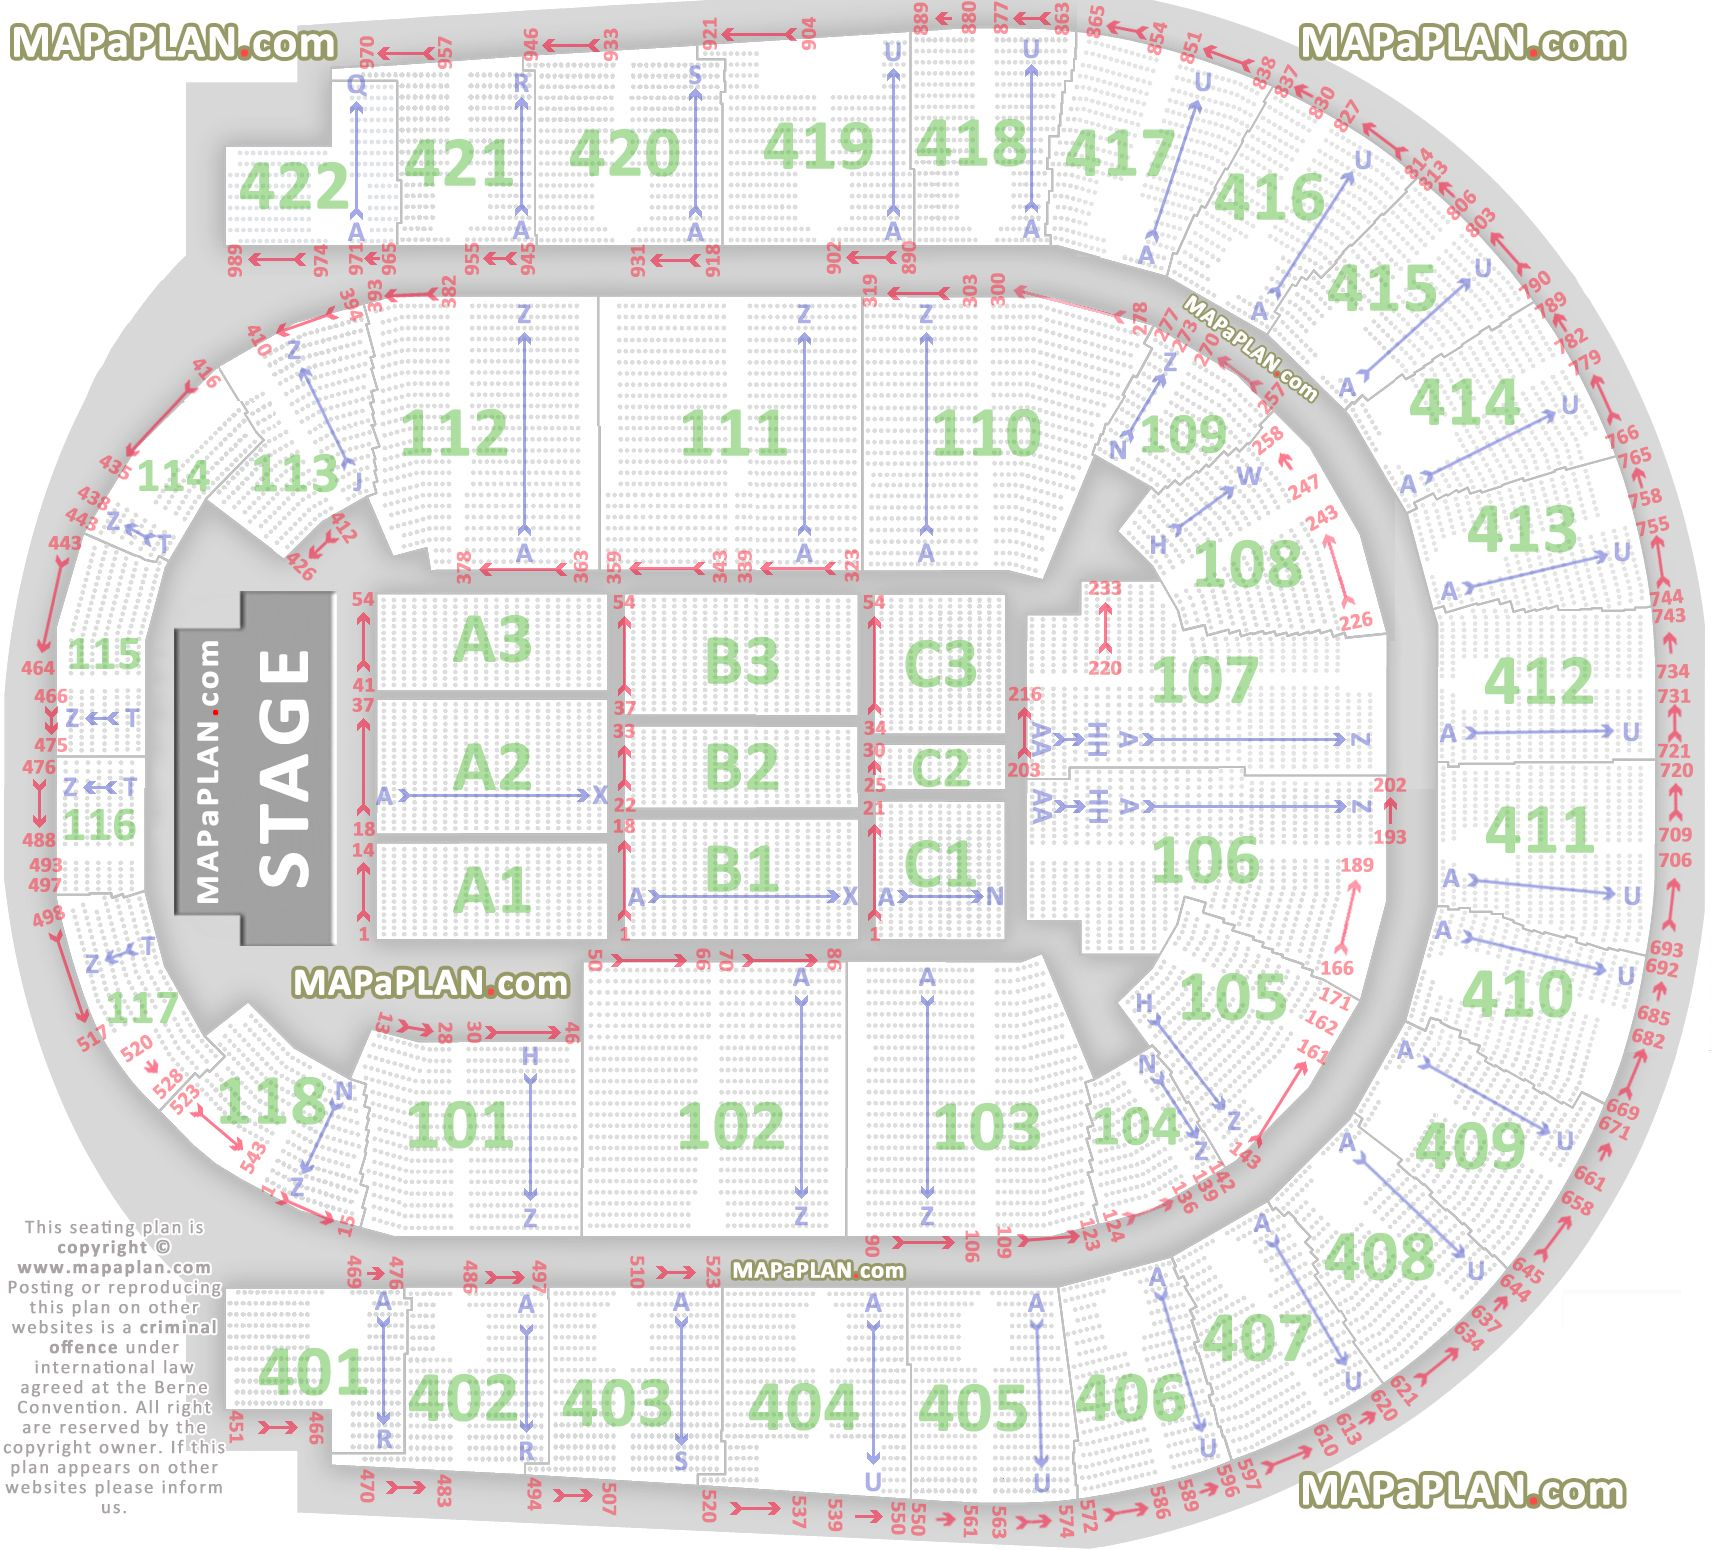 o2 london seating plan disabled dating